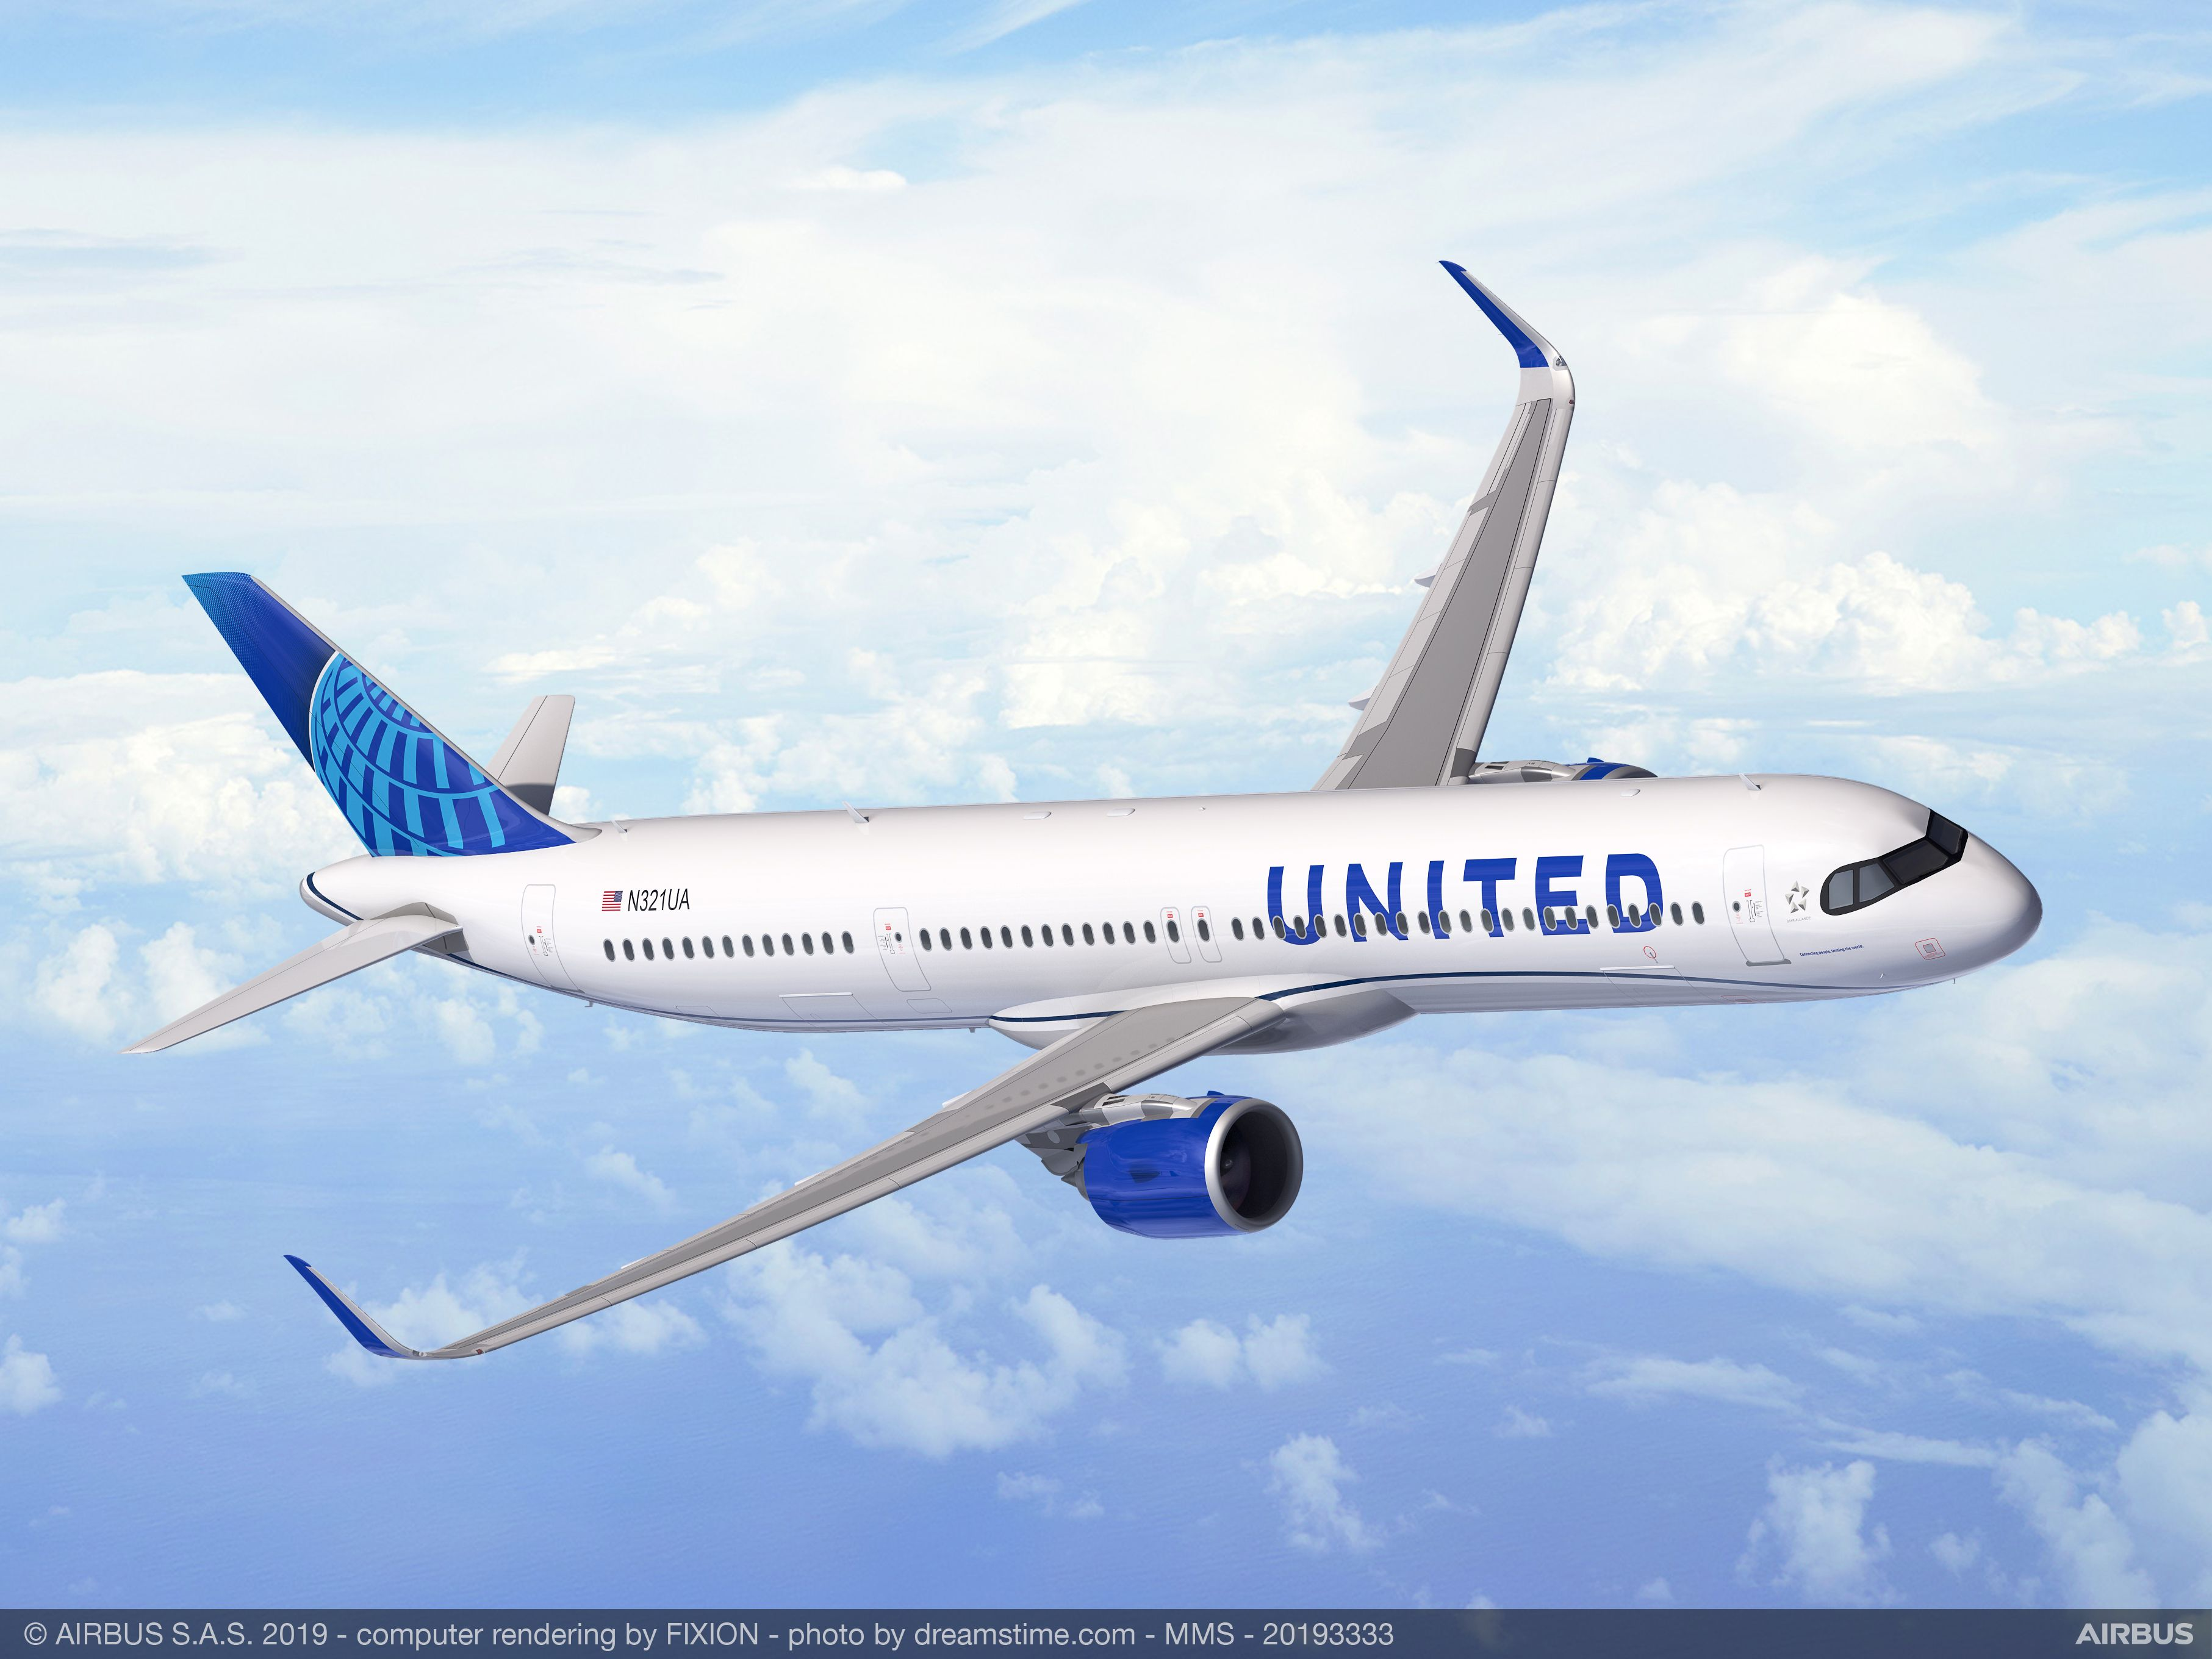 United Airlines orders 50 Airbus A321XLRs for transatlantic route expansion  - Commercial Aircraft - Airbus